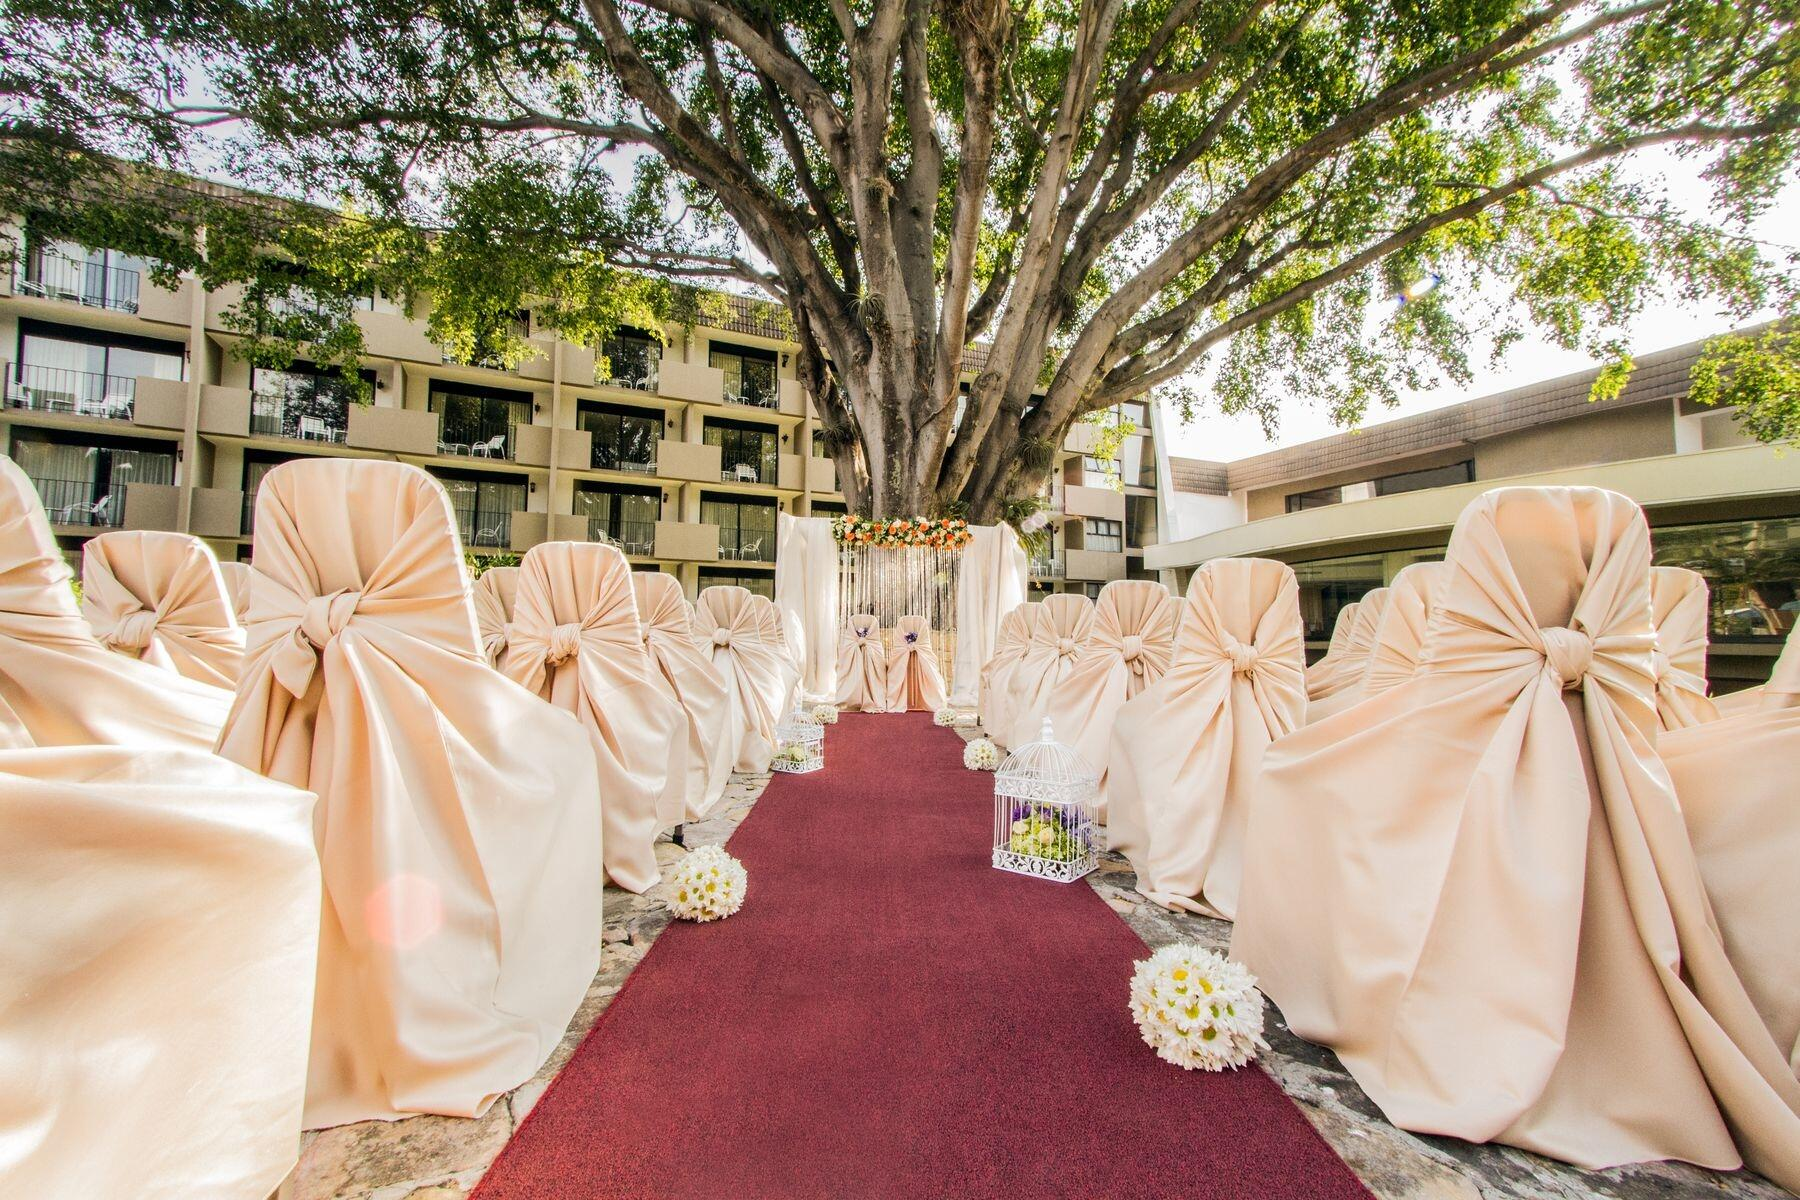 Carpeted walkway to wedding alter